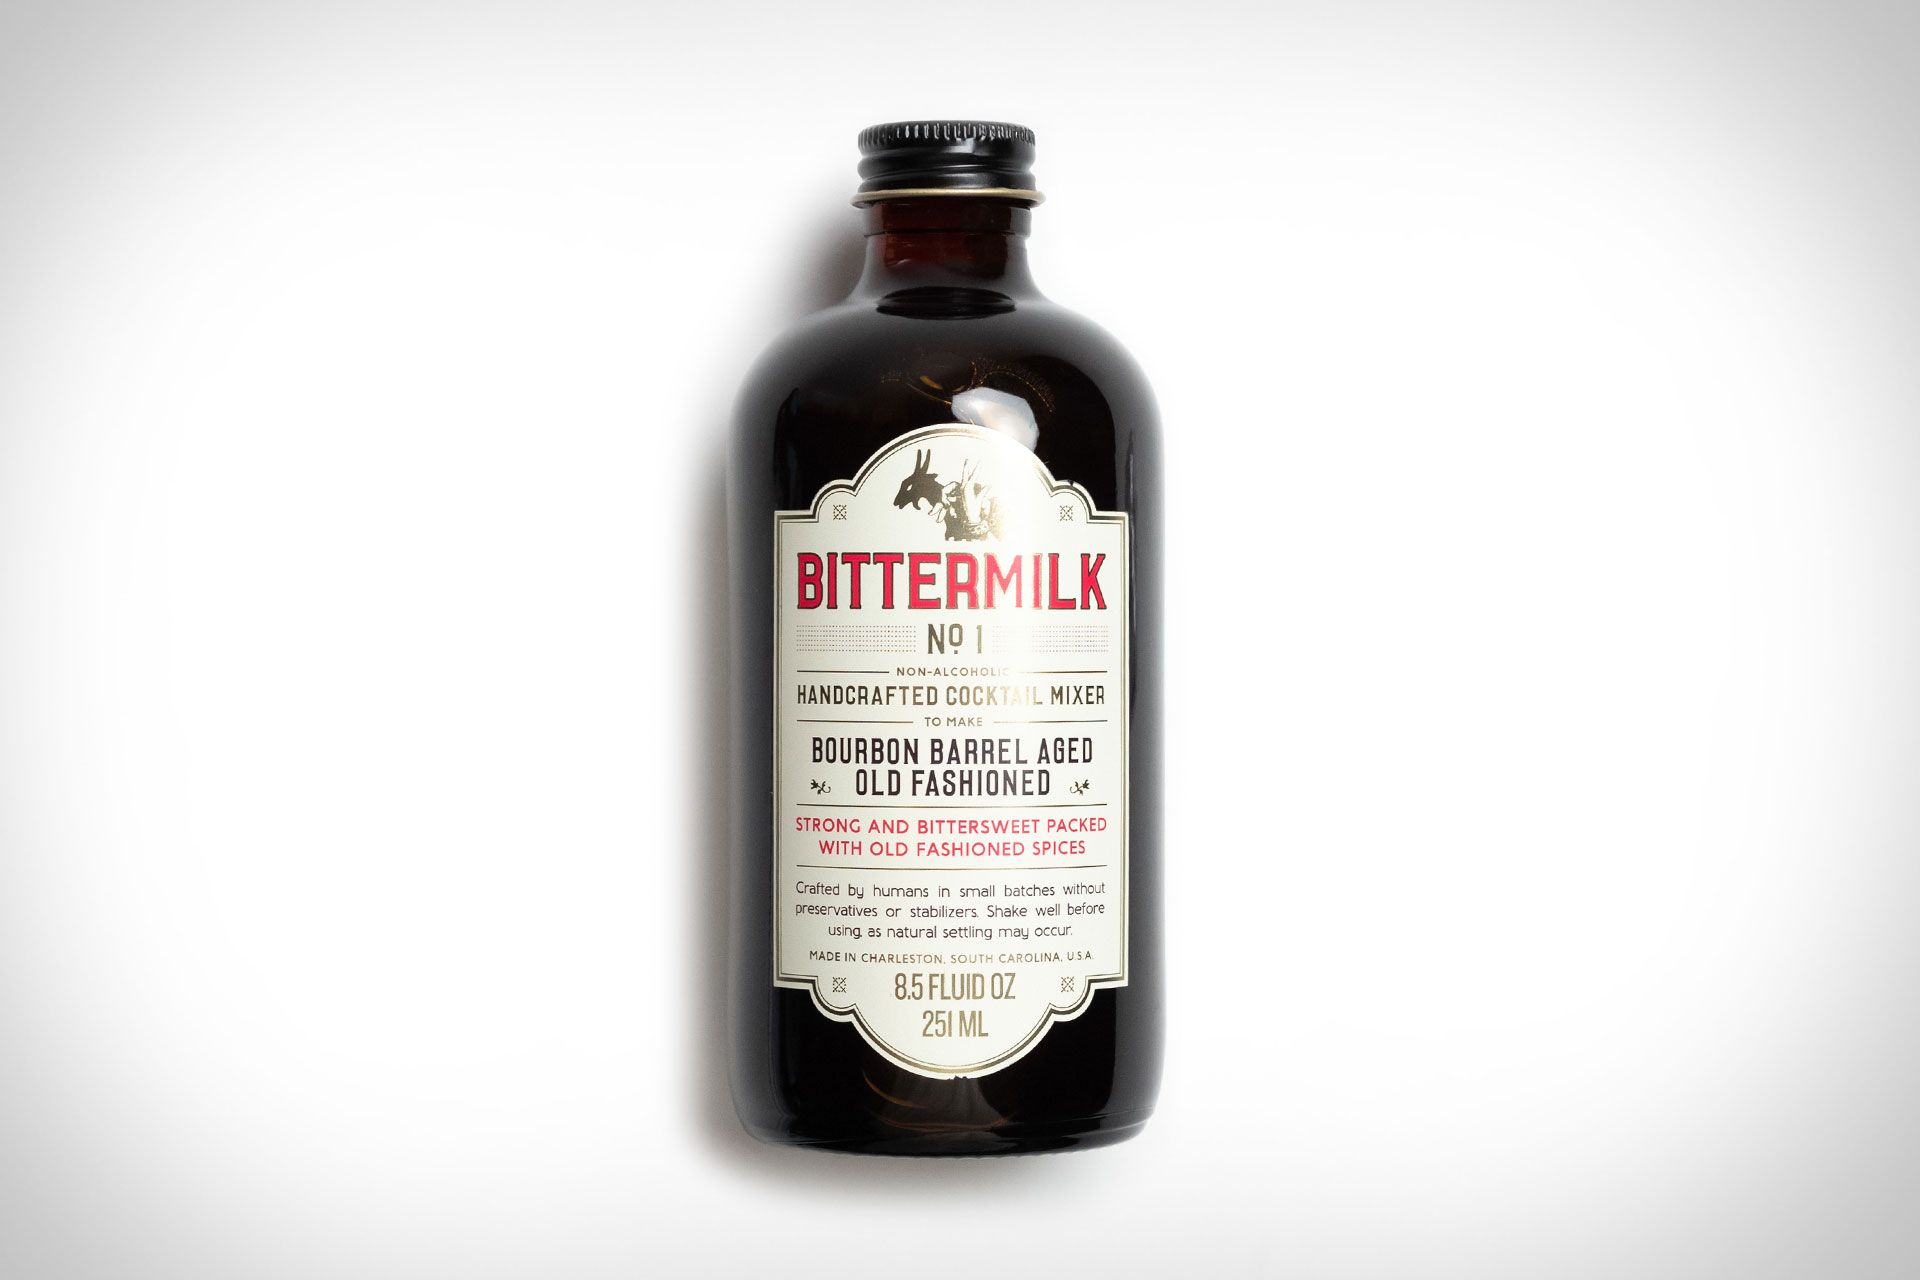 Bittermilk Bourbon Barrel Aged Old Fashioned Mix